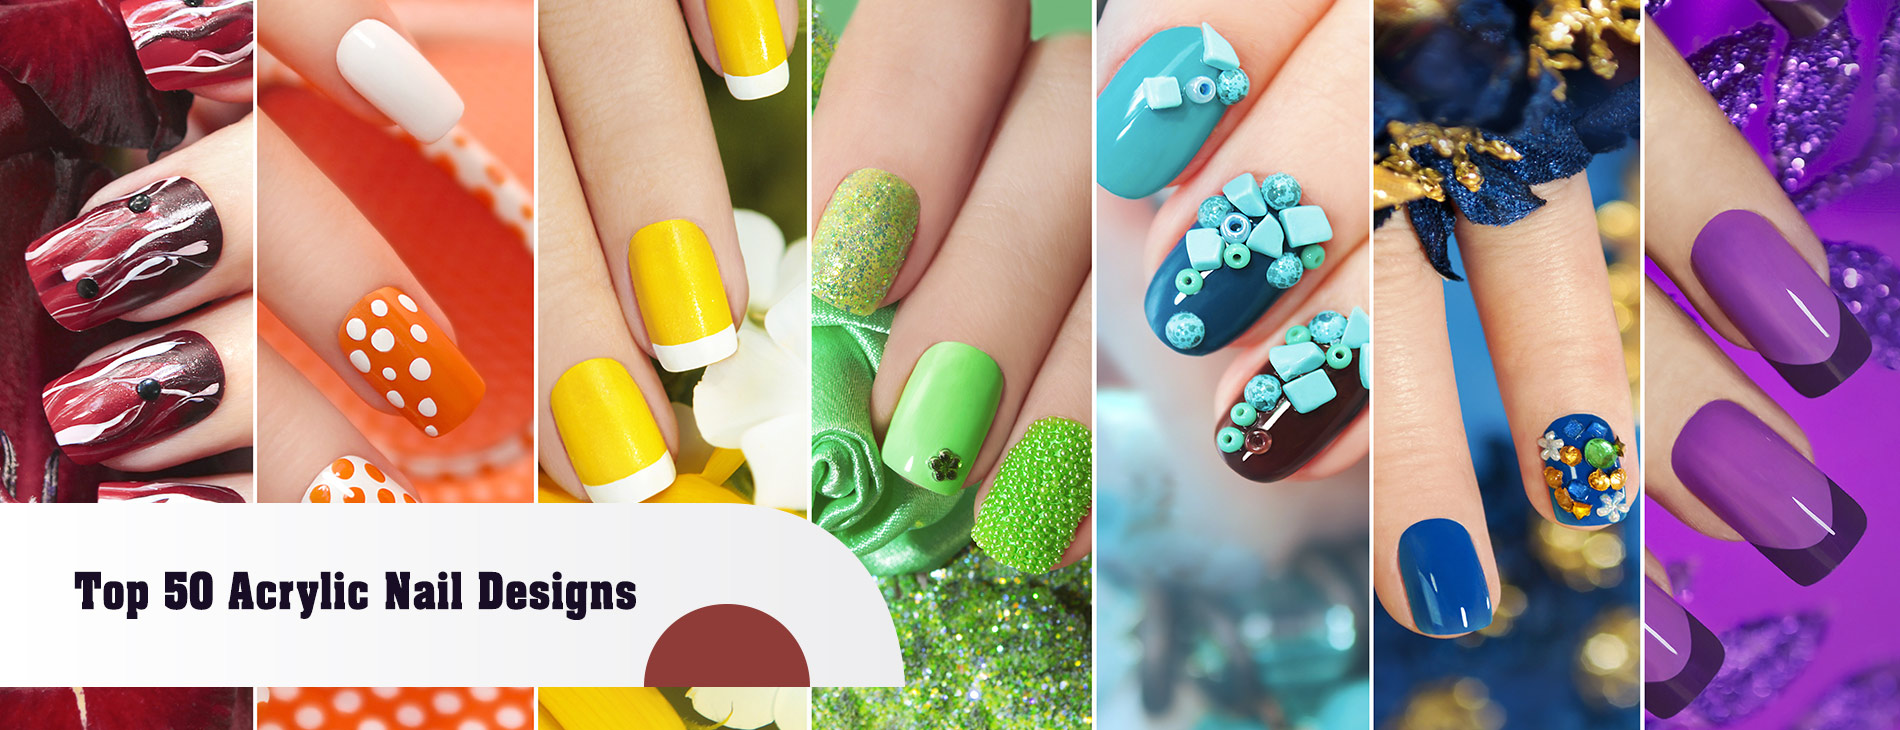 Top-50-Acrylic-Nail-Designs